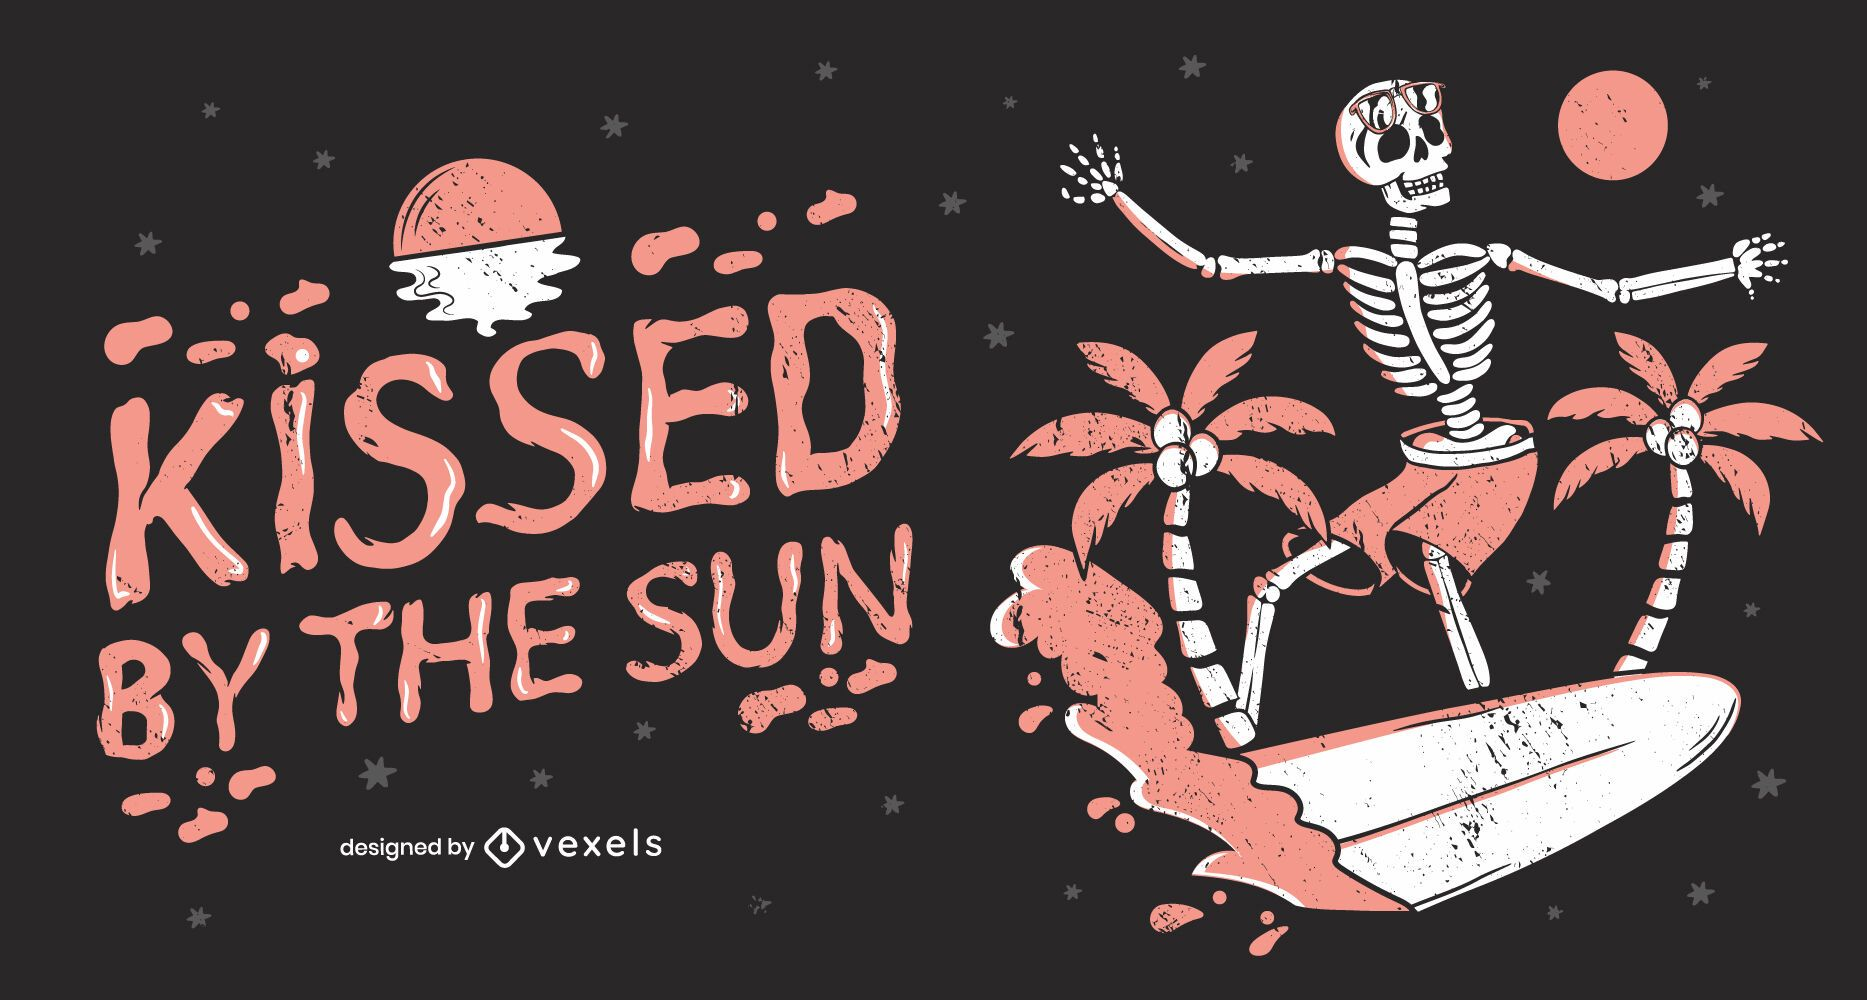 Kissed by the sun illustration design